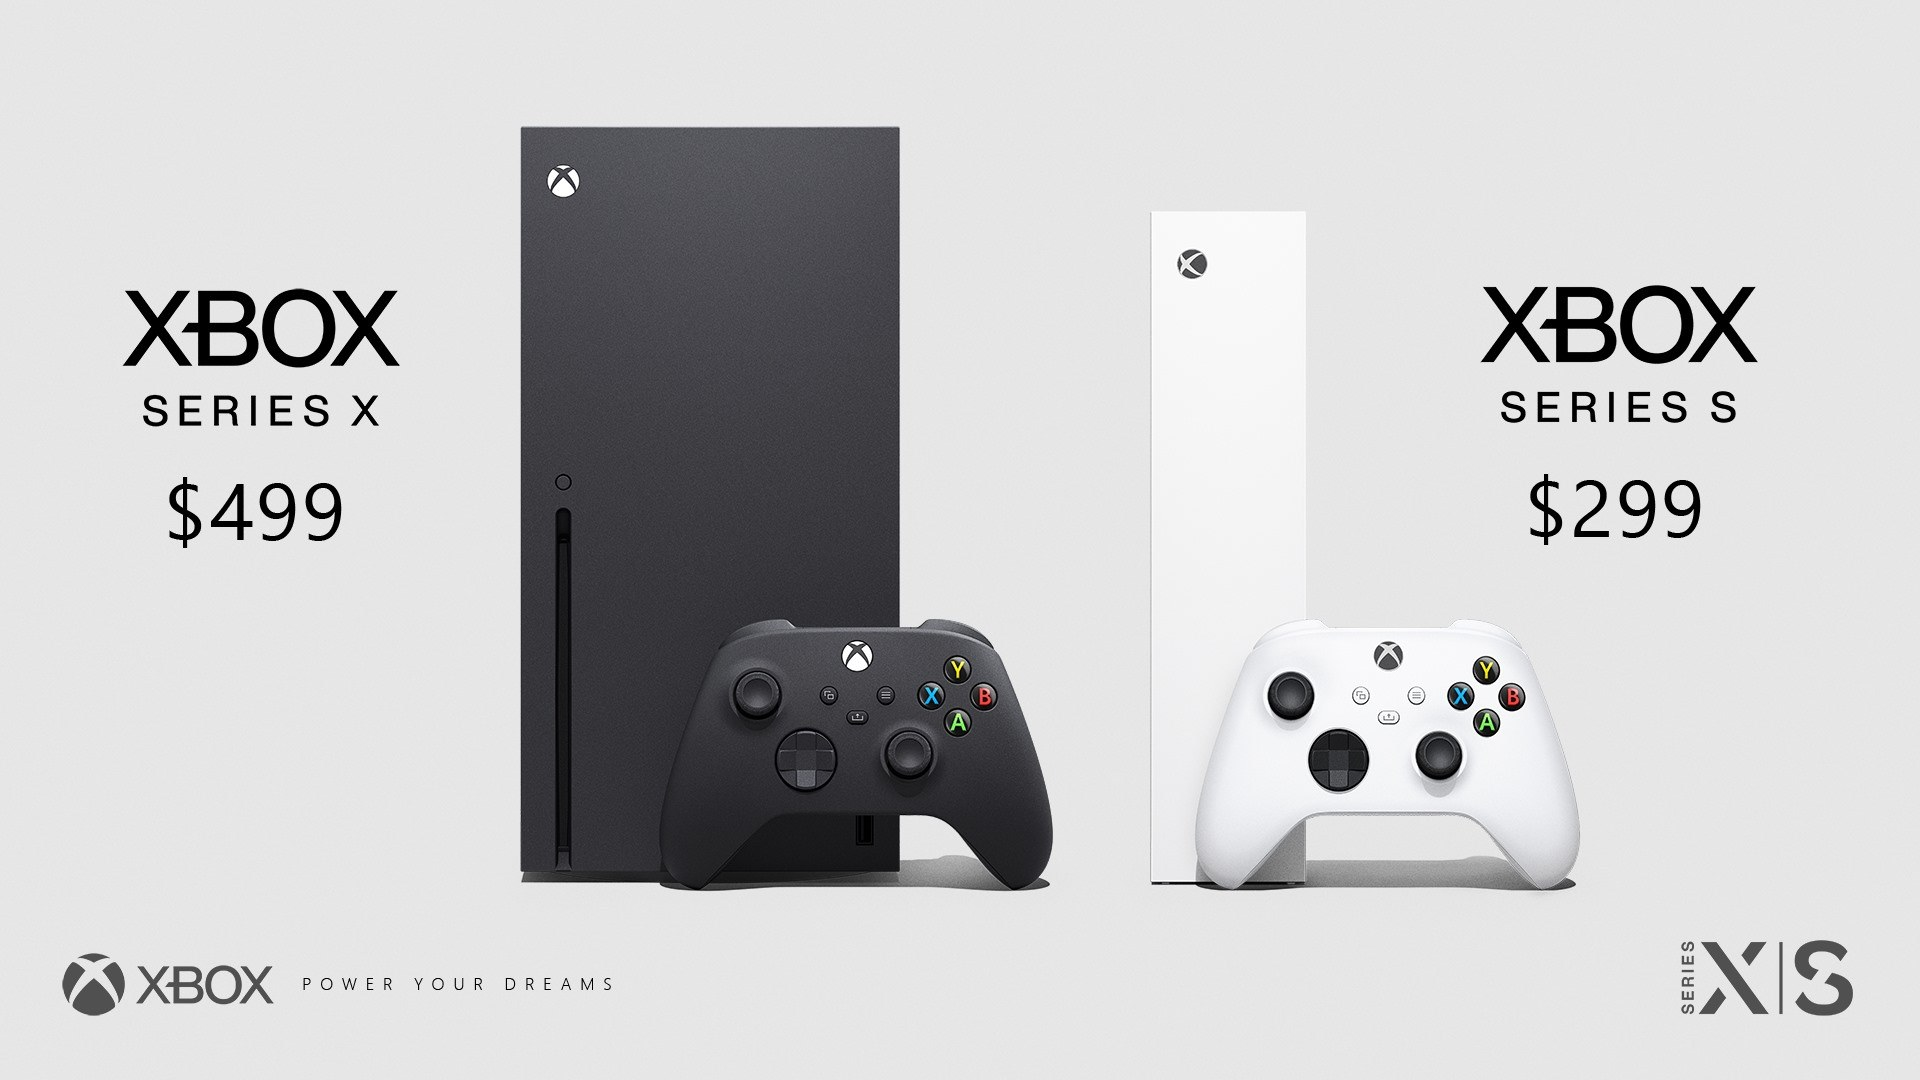 Microsoft Officially Announces Xbox Series S and Series X Consoles; Priced at US$299 and US$499 Respectively 9